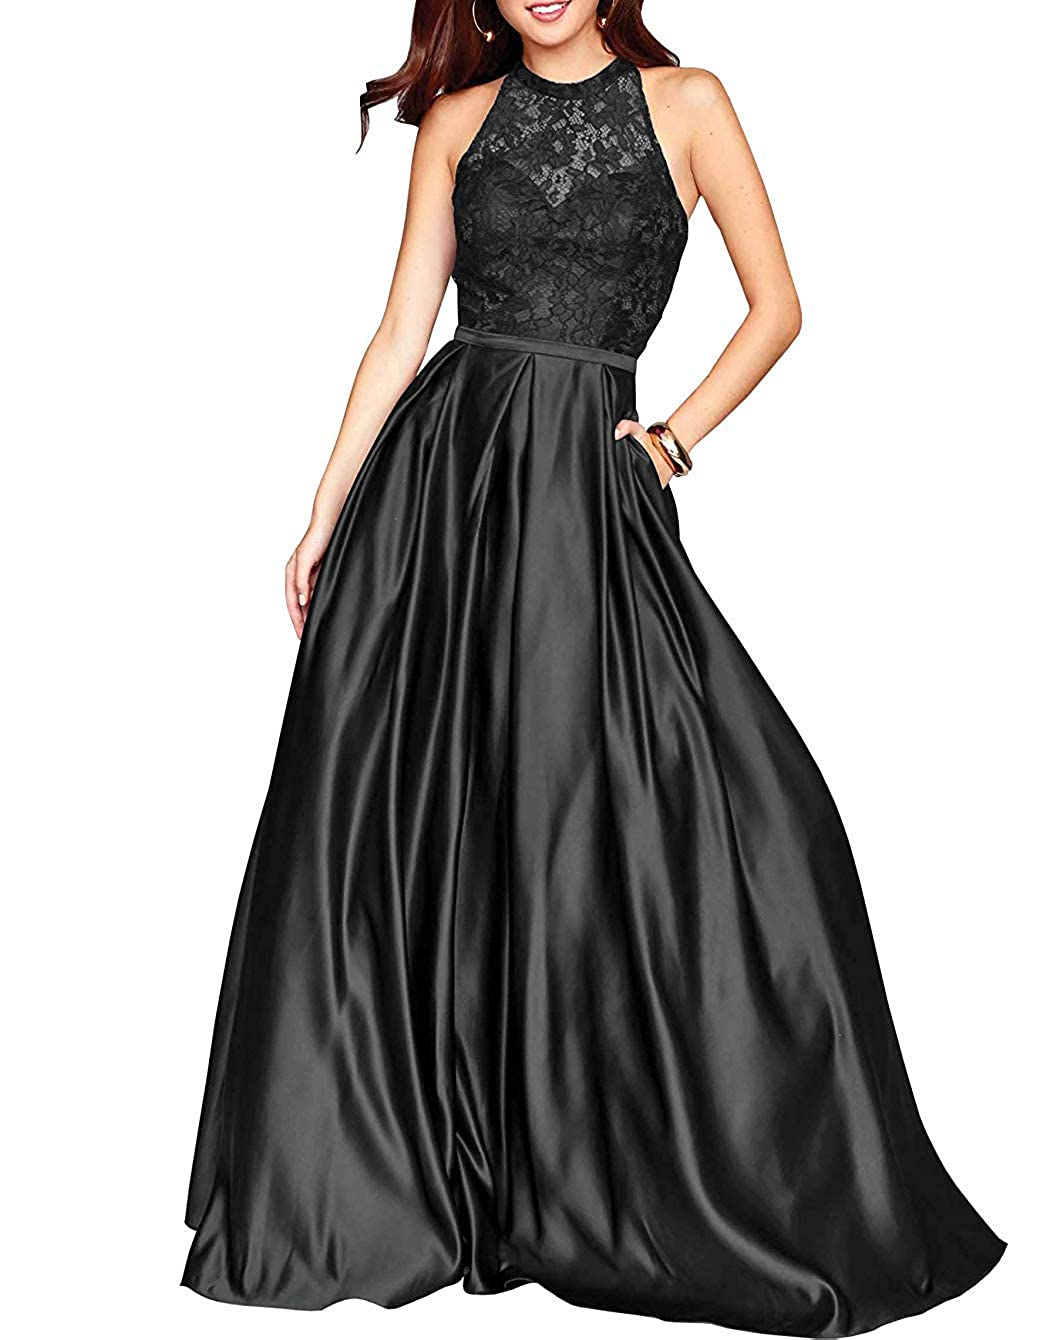 Black PearlBridal Women's Halter Lace Prom Dresses Backless A Line Long Evening Formal Dress with Pockets